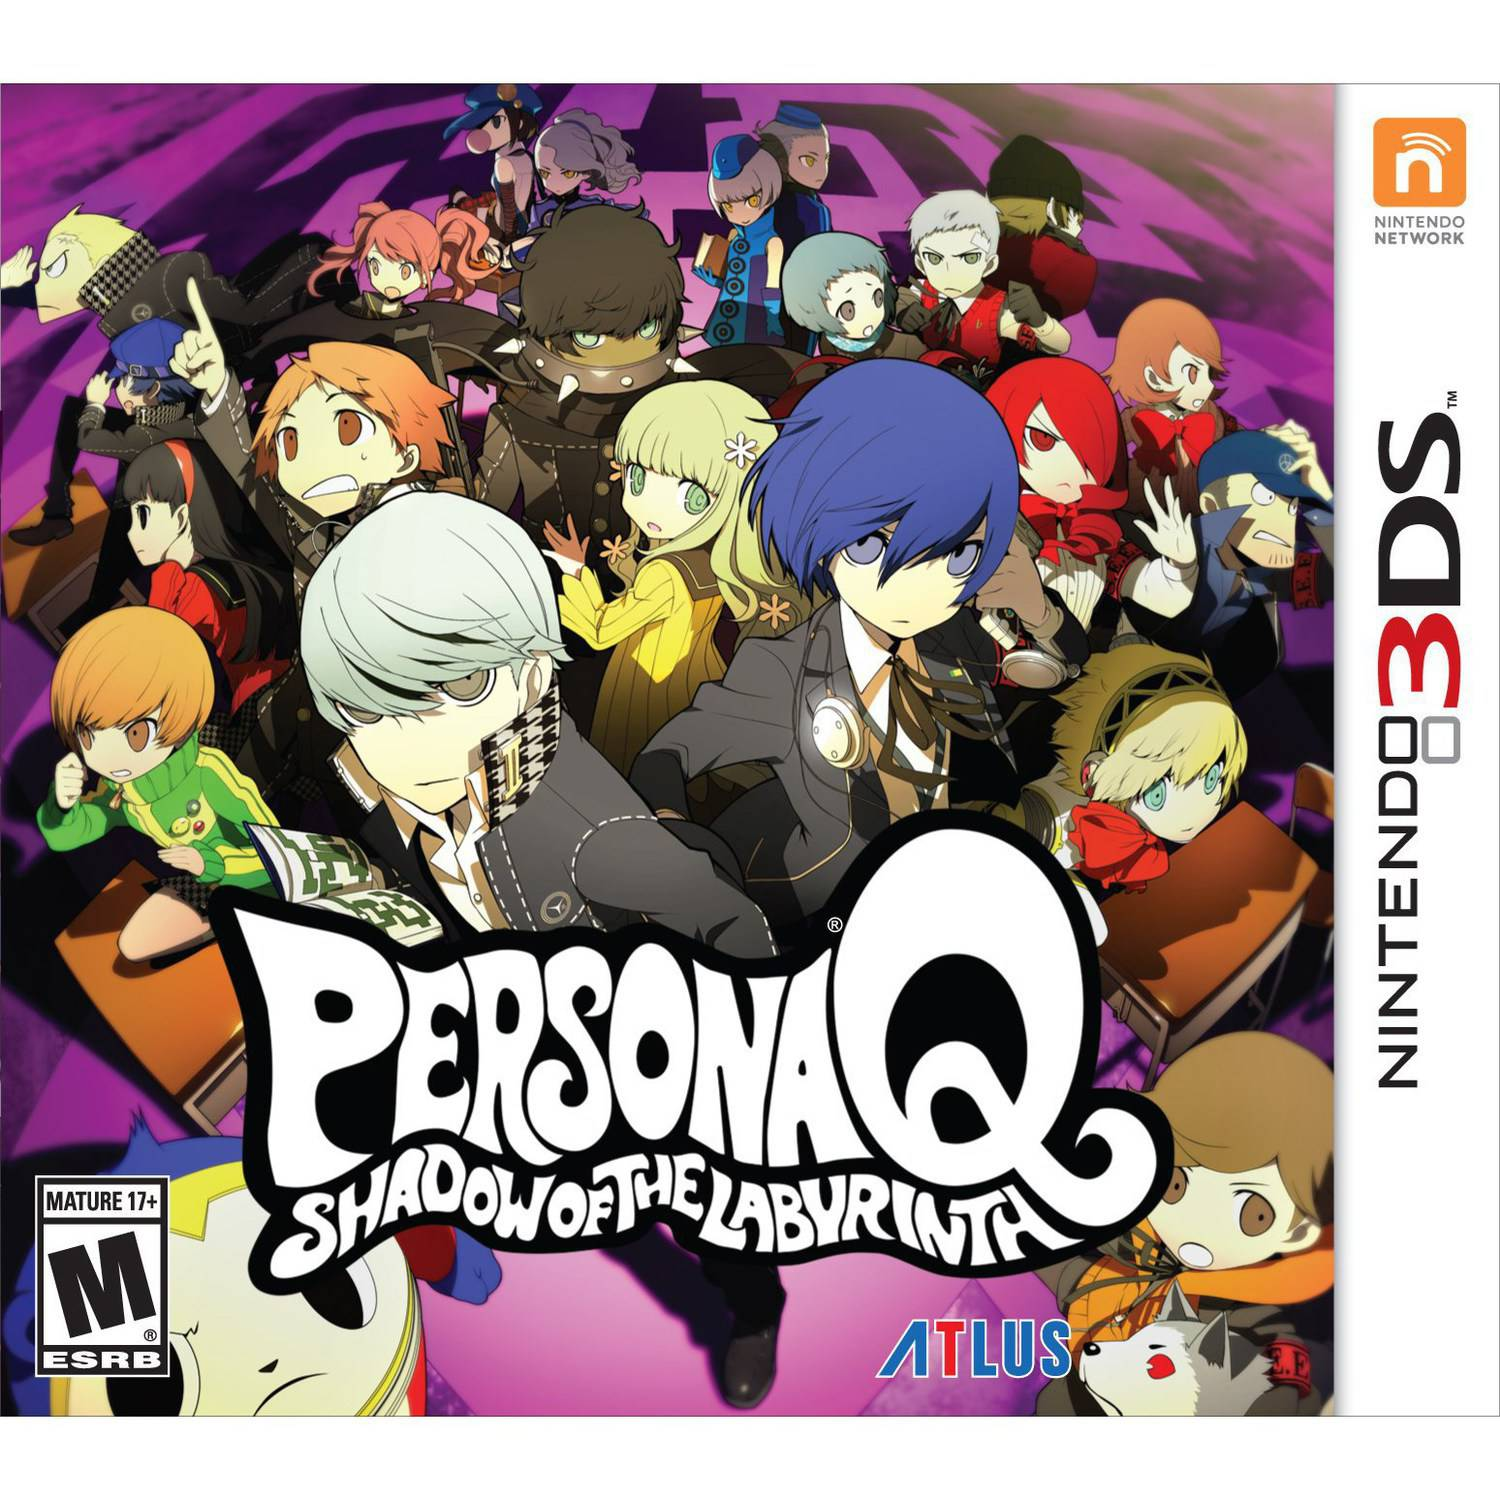 Persona Q: Shadow of the Labyrinth: Wild Cards Premium Edition (Nintendo 3DS)